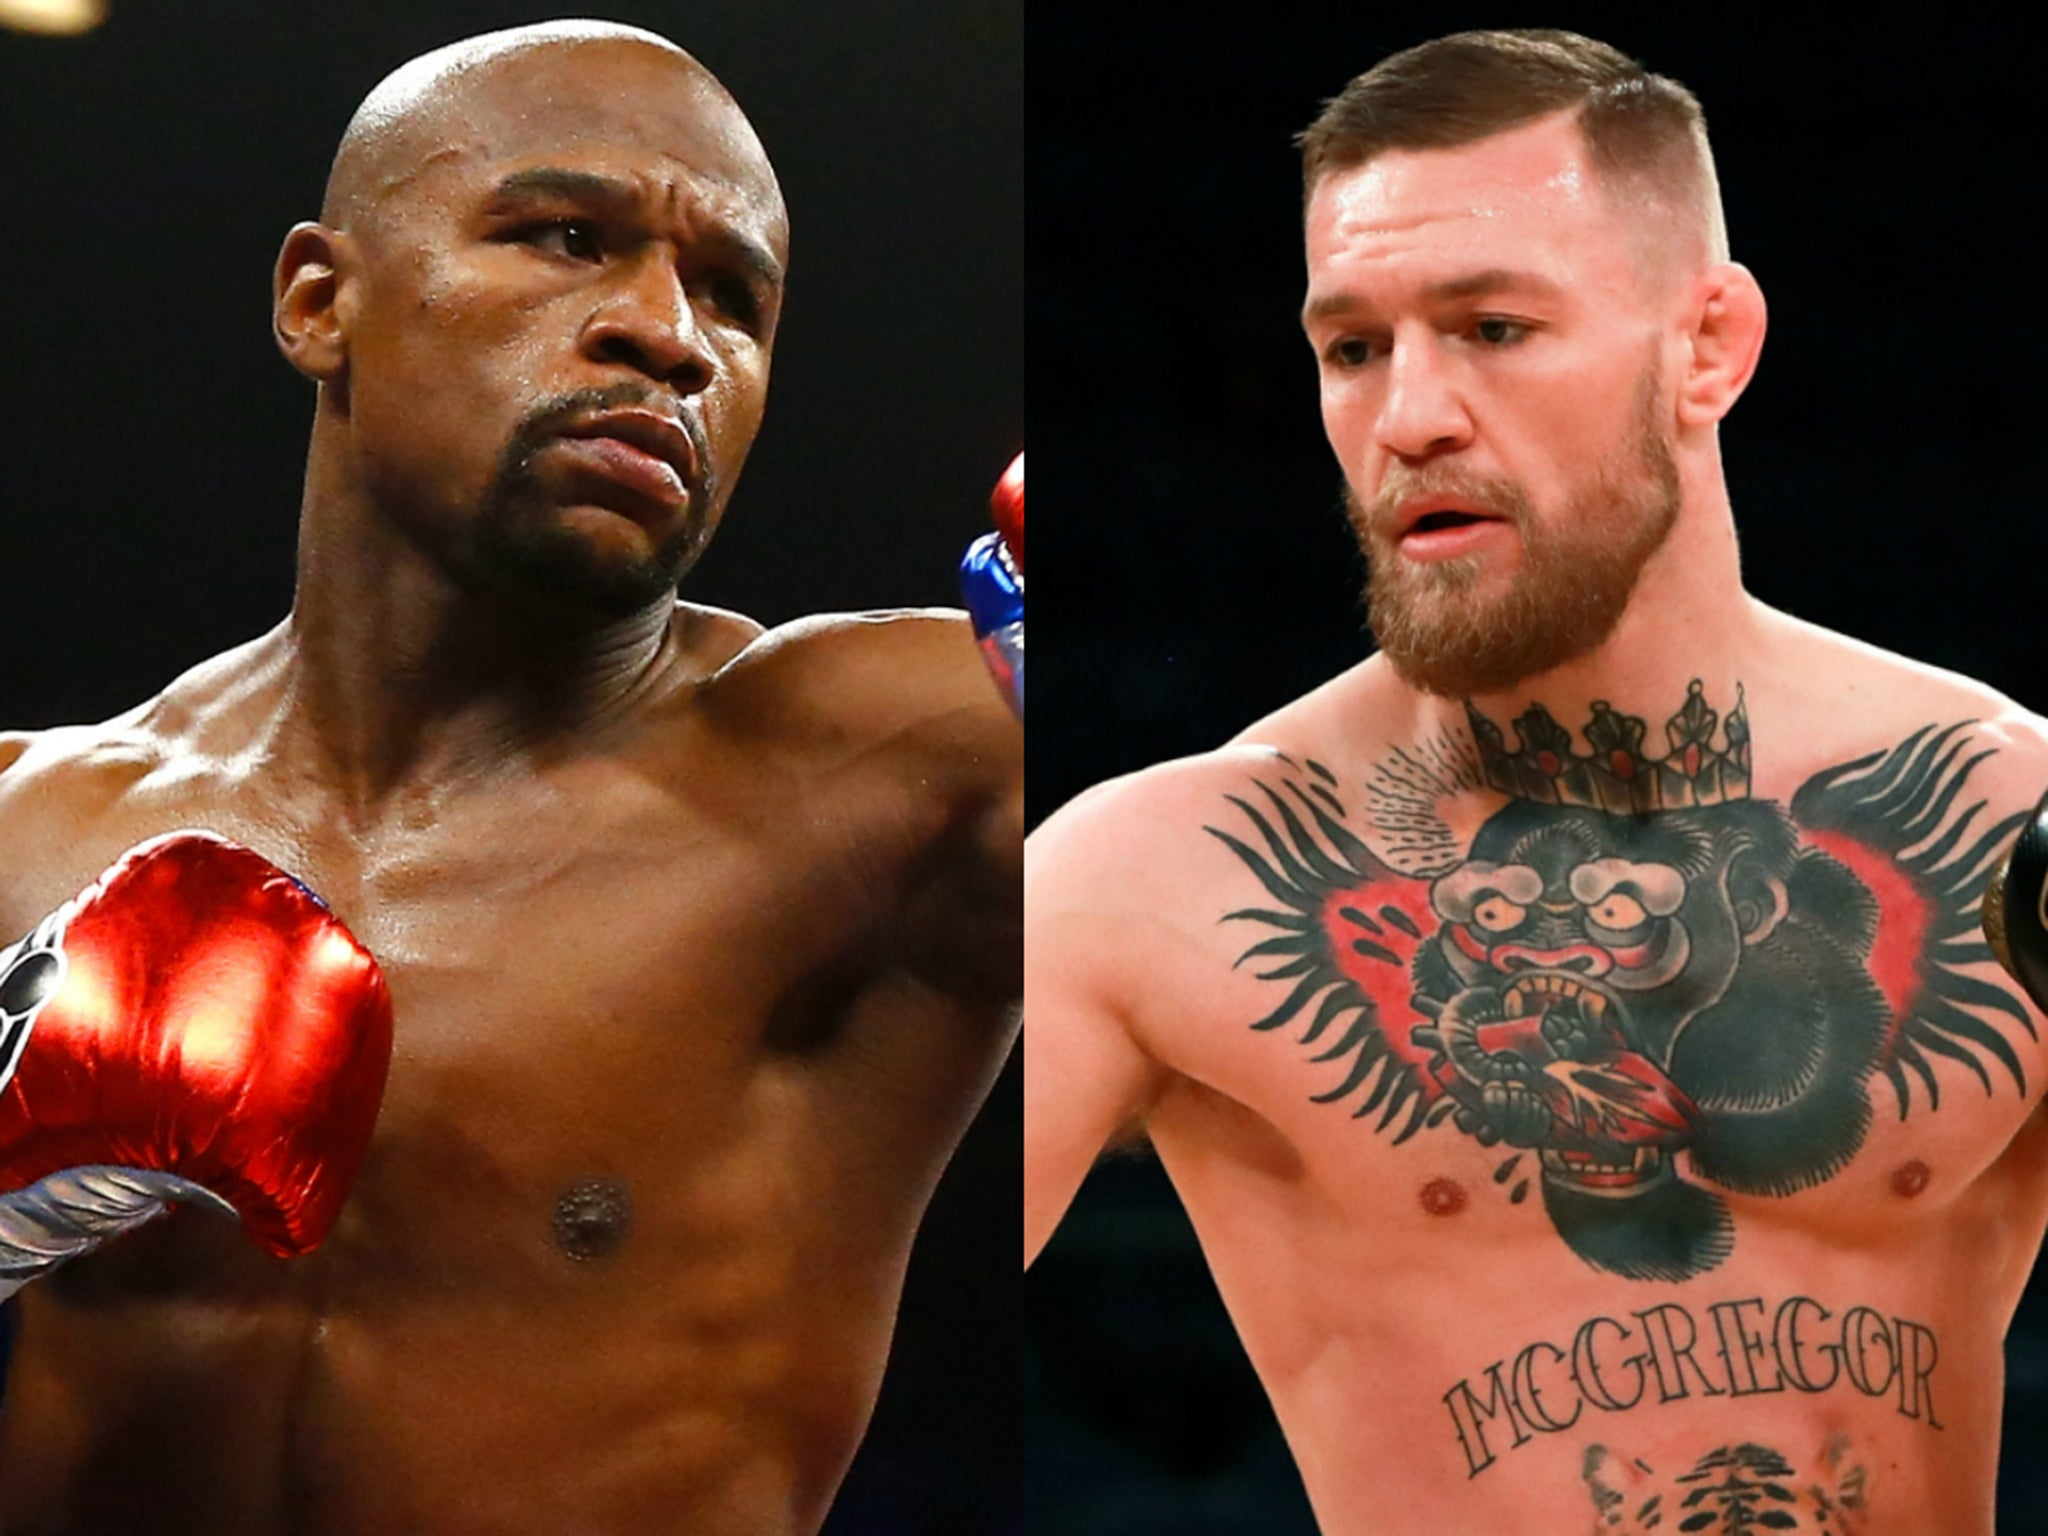 https://static.independent.co.uk/s3fs-public/thumbnails/image/2017/03/21/14/mayweather-mcgregor-ii.jpg